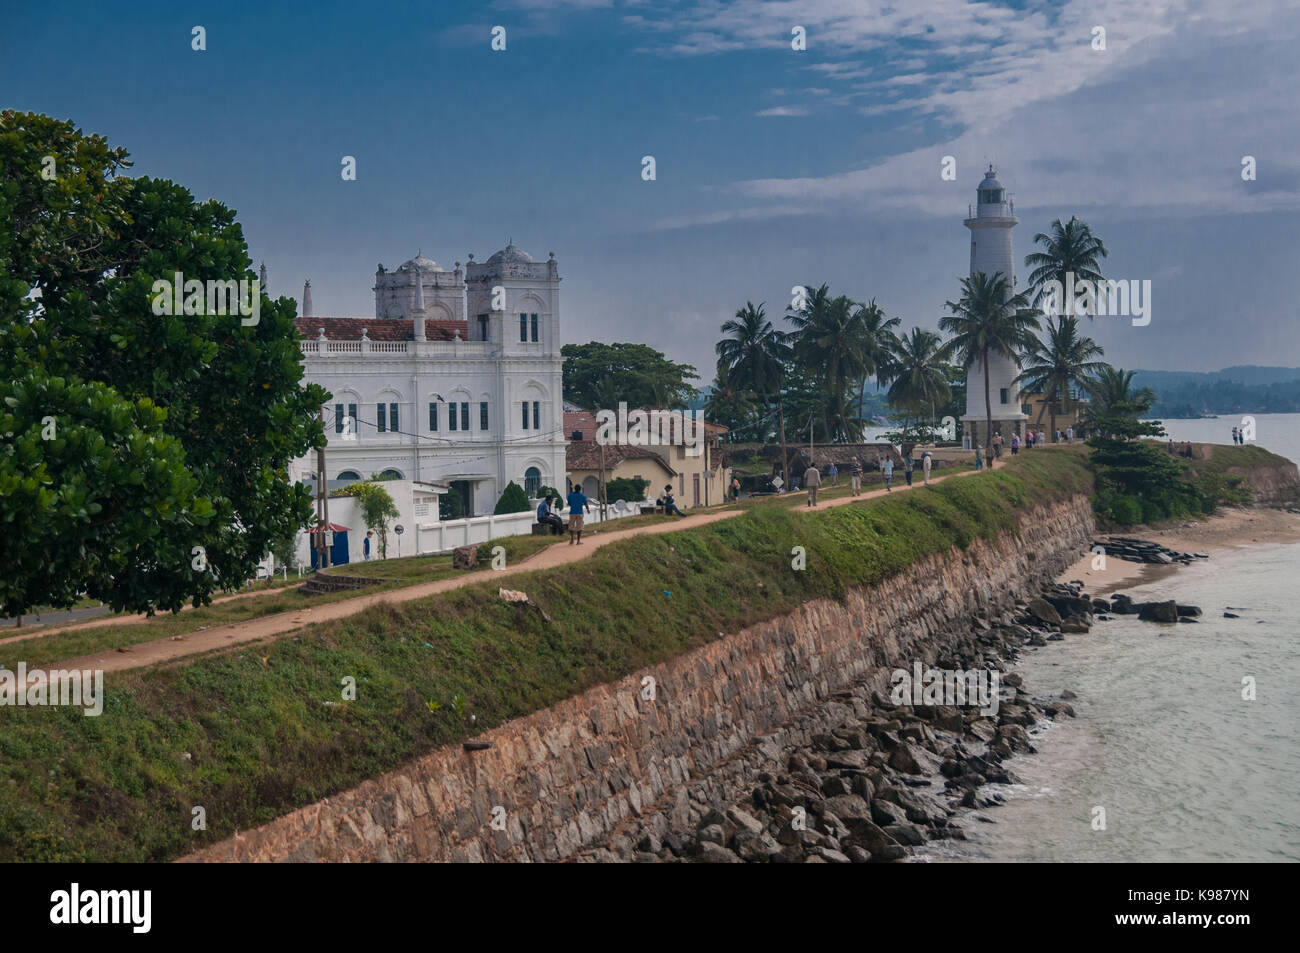 The Meeran Masjid (mosque) and the Galle Lighthouse from the fort wall. Galle, Sri Lanka. - Stock Image